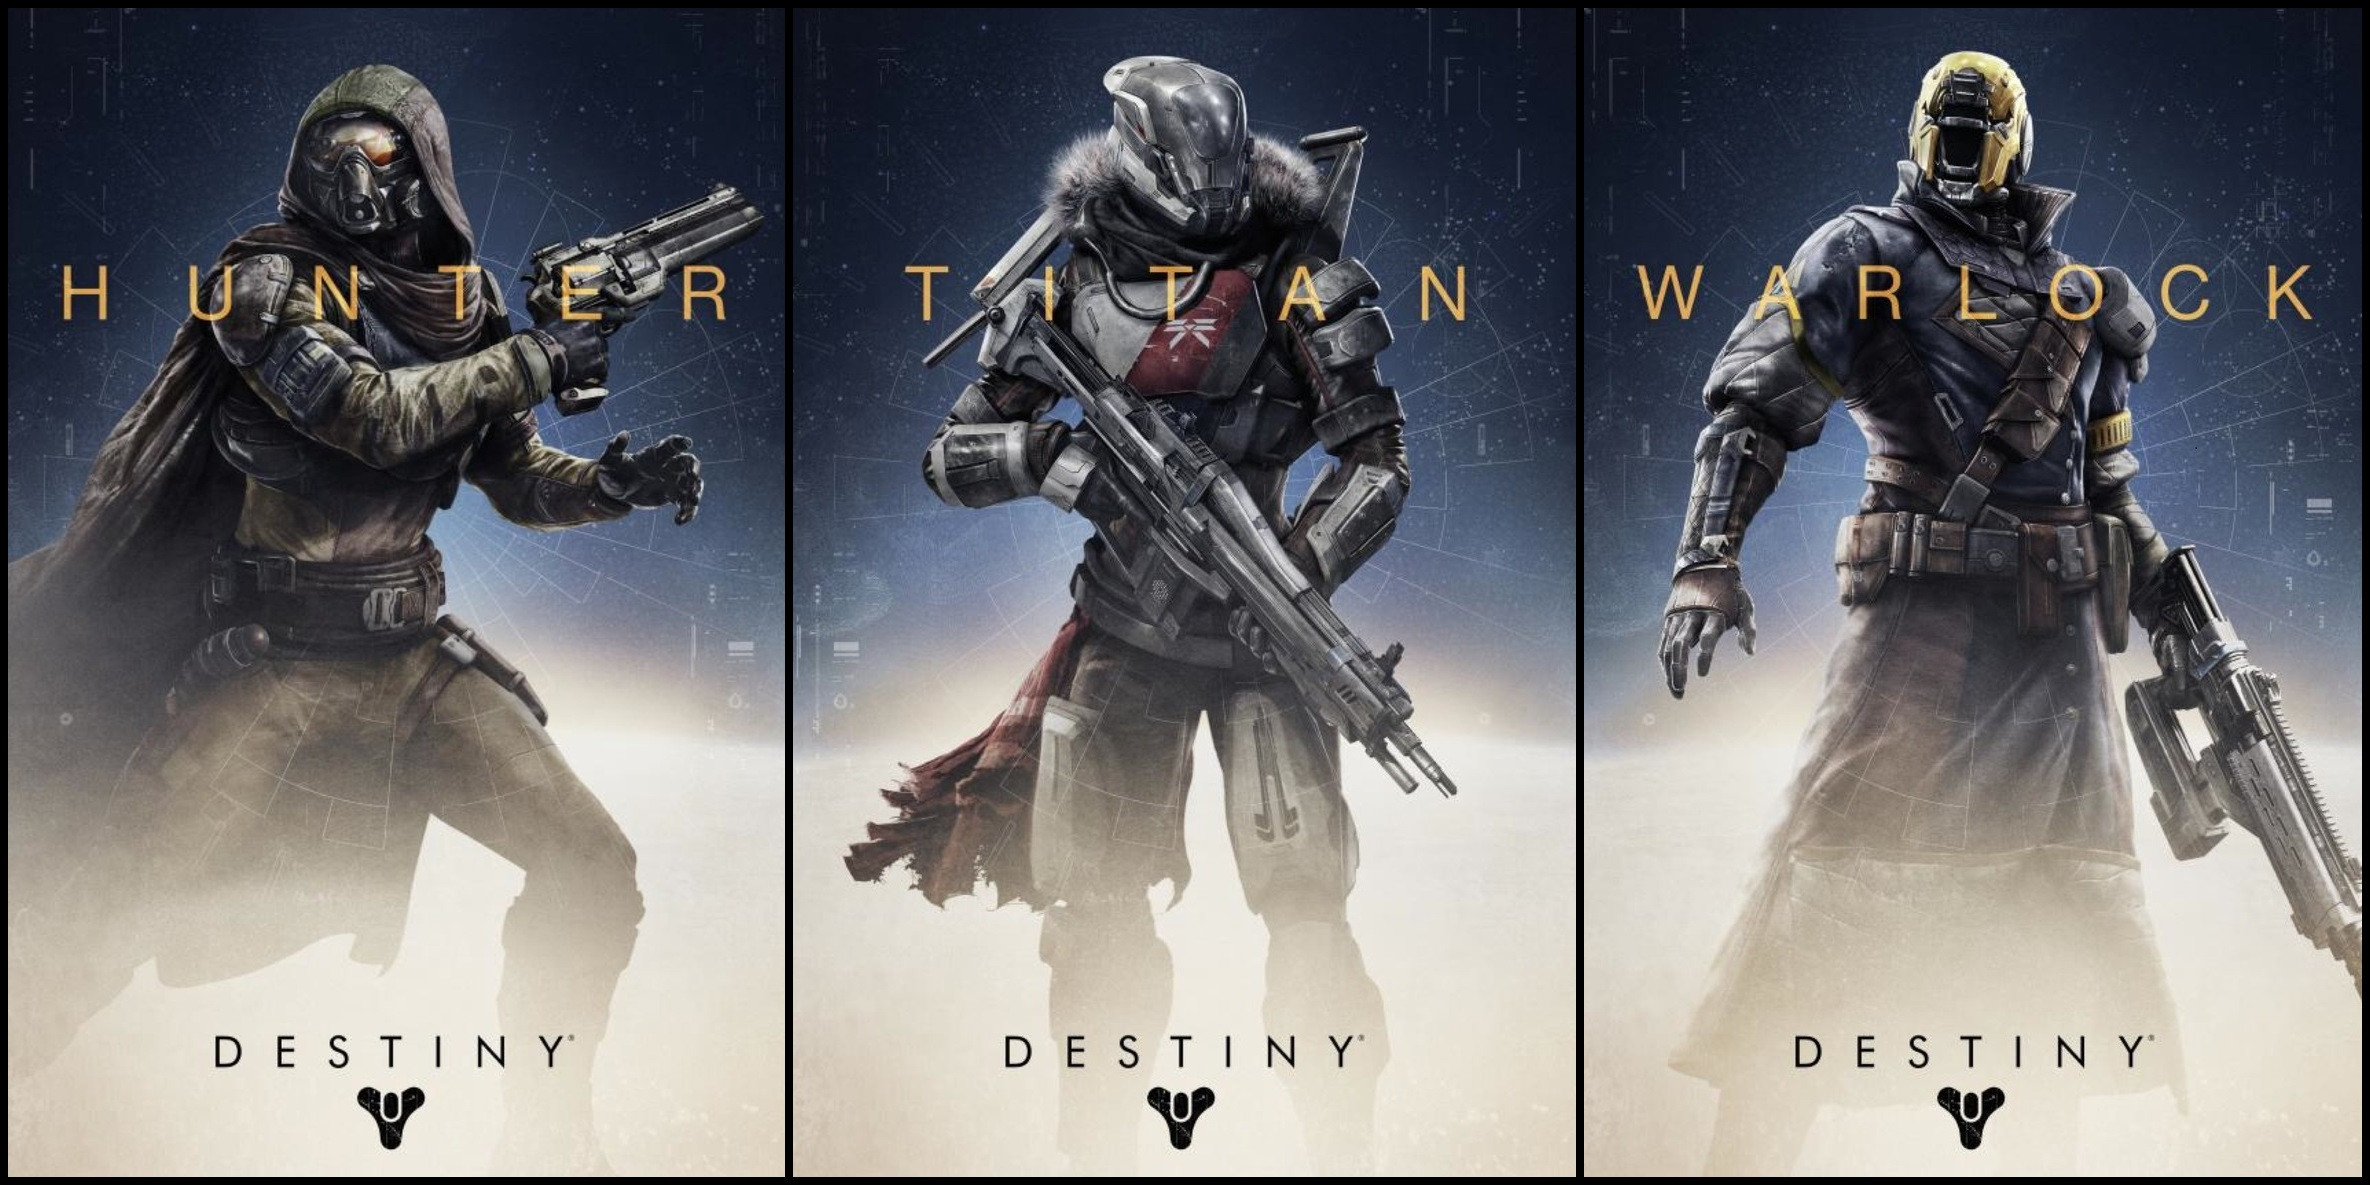 How to choose the right class in destiny shinigaming